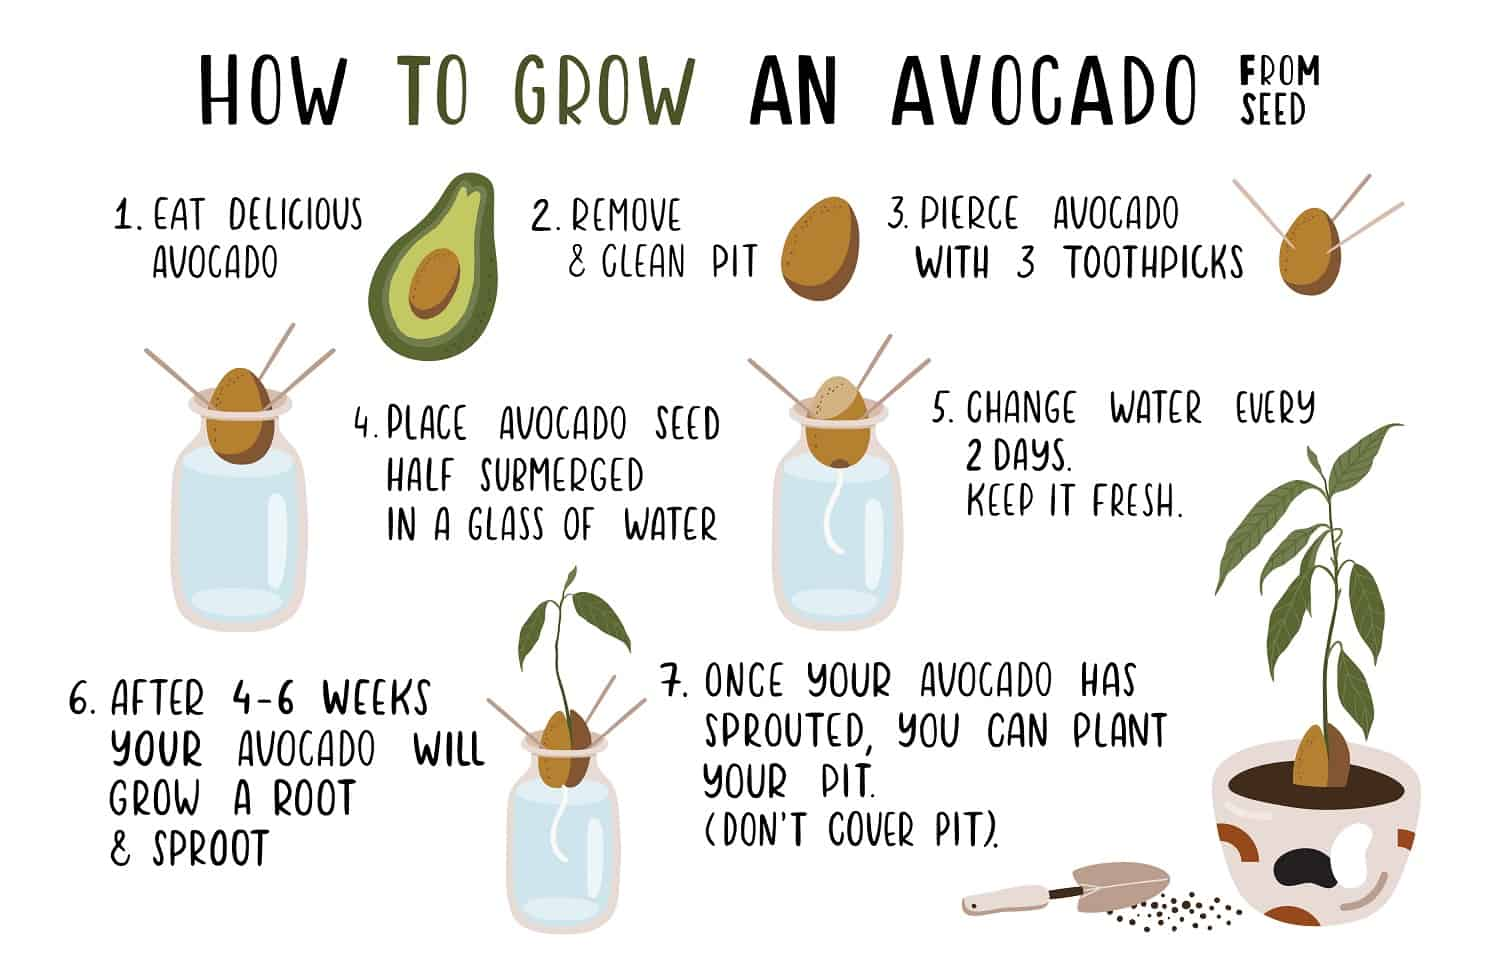 7 Easy Steps on How to Grow Avocado from Seed